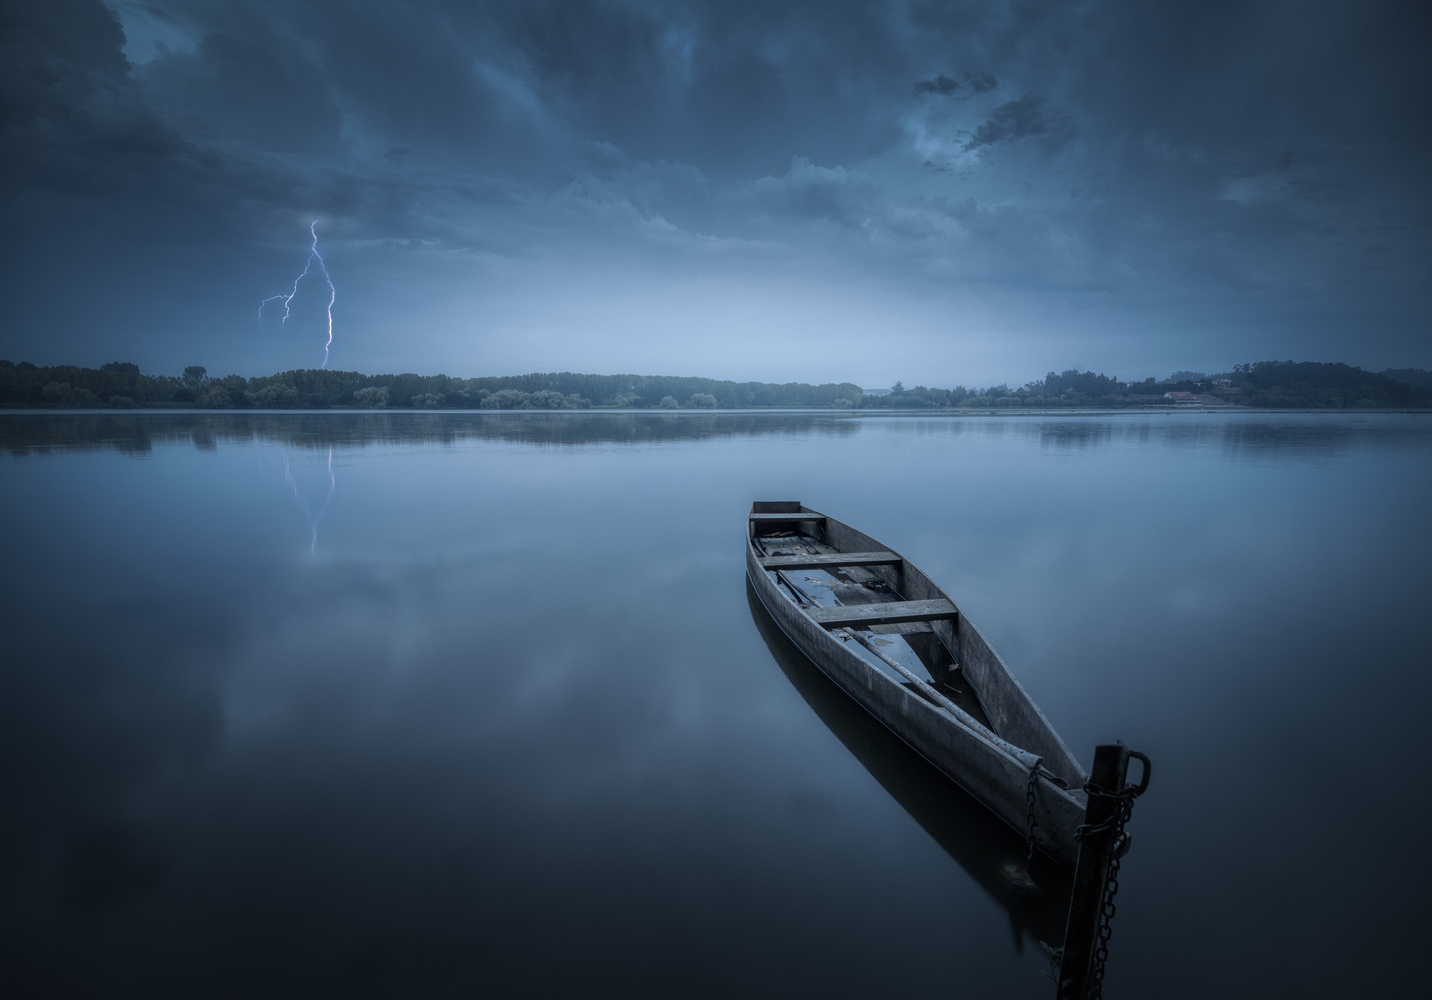 Morning Thunder by Tiago Marques